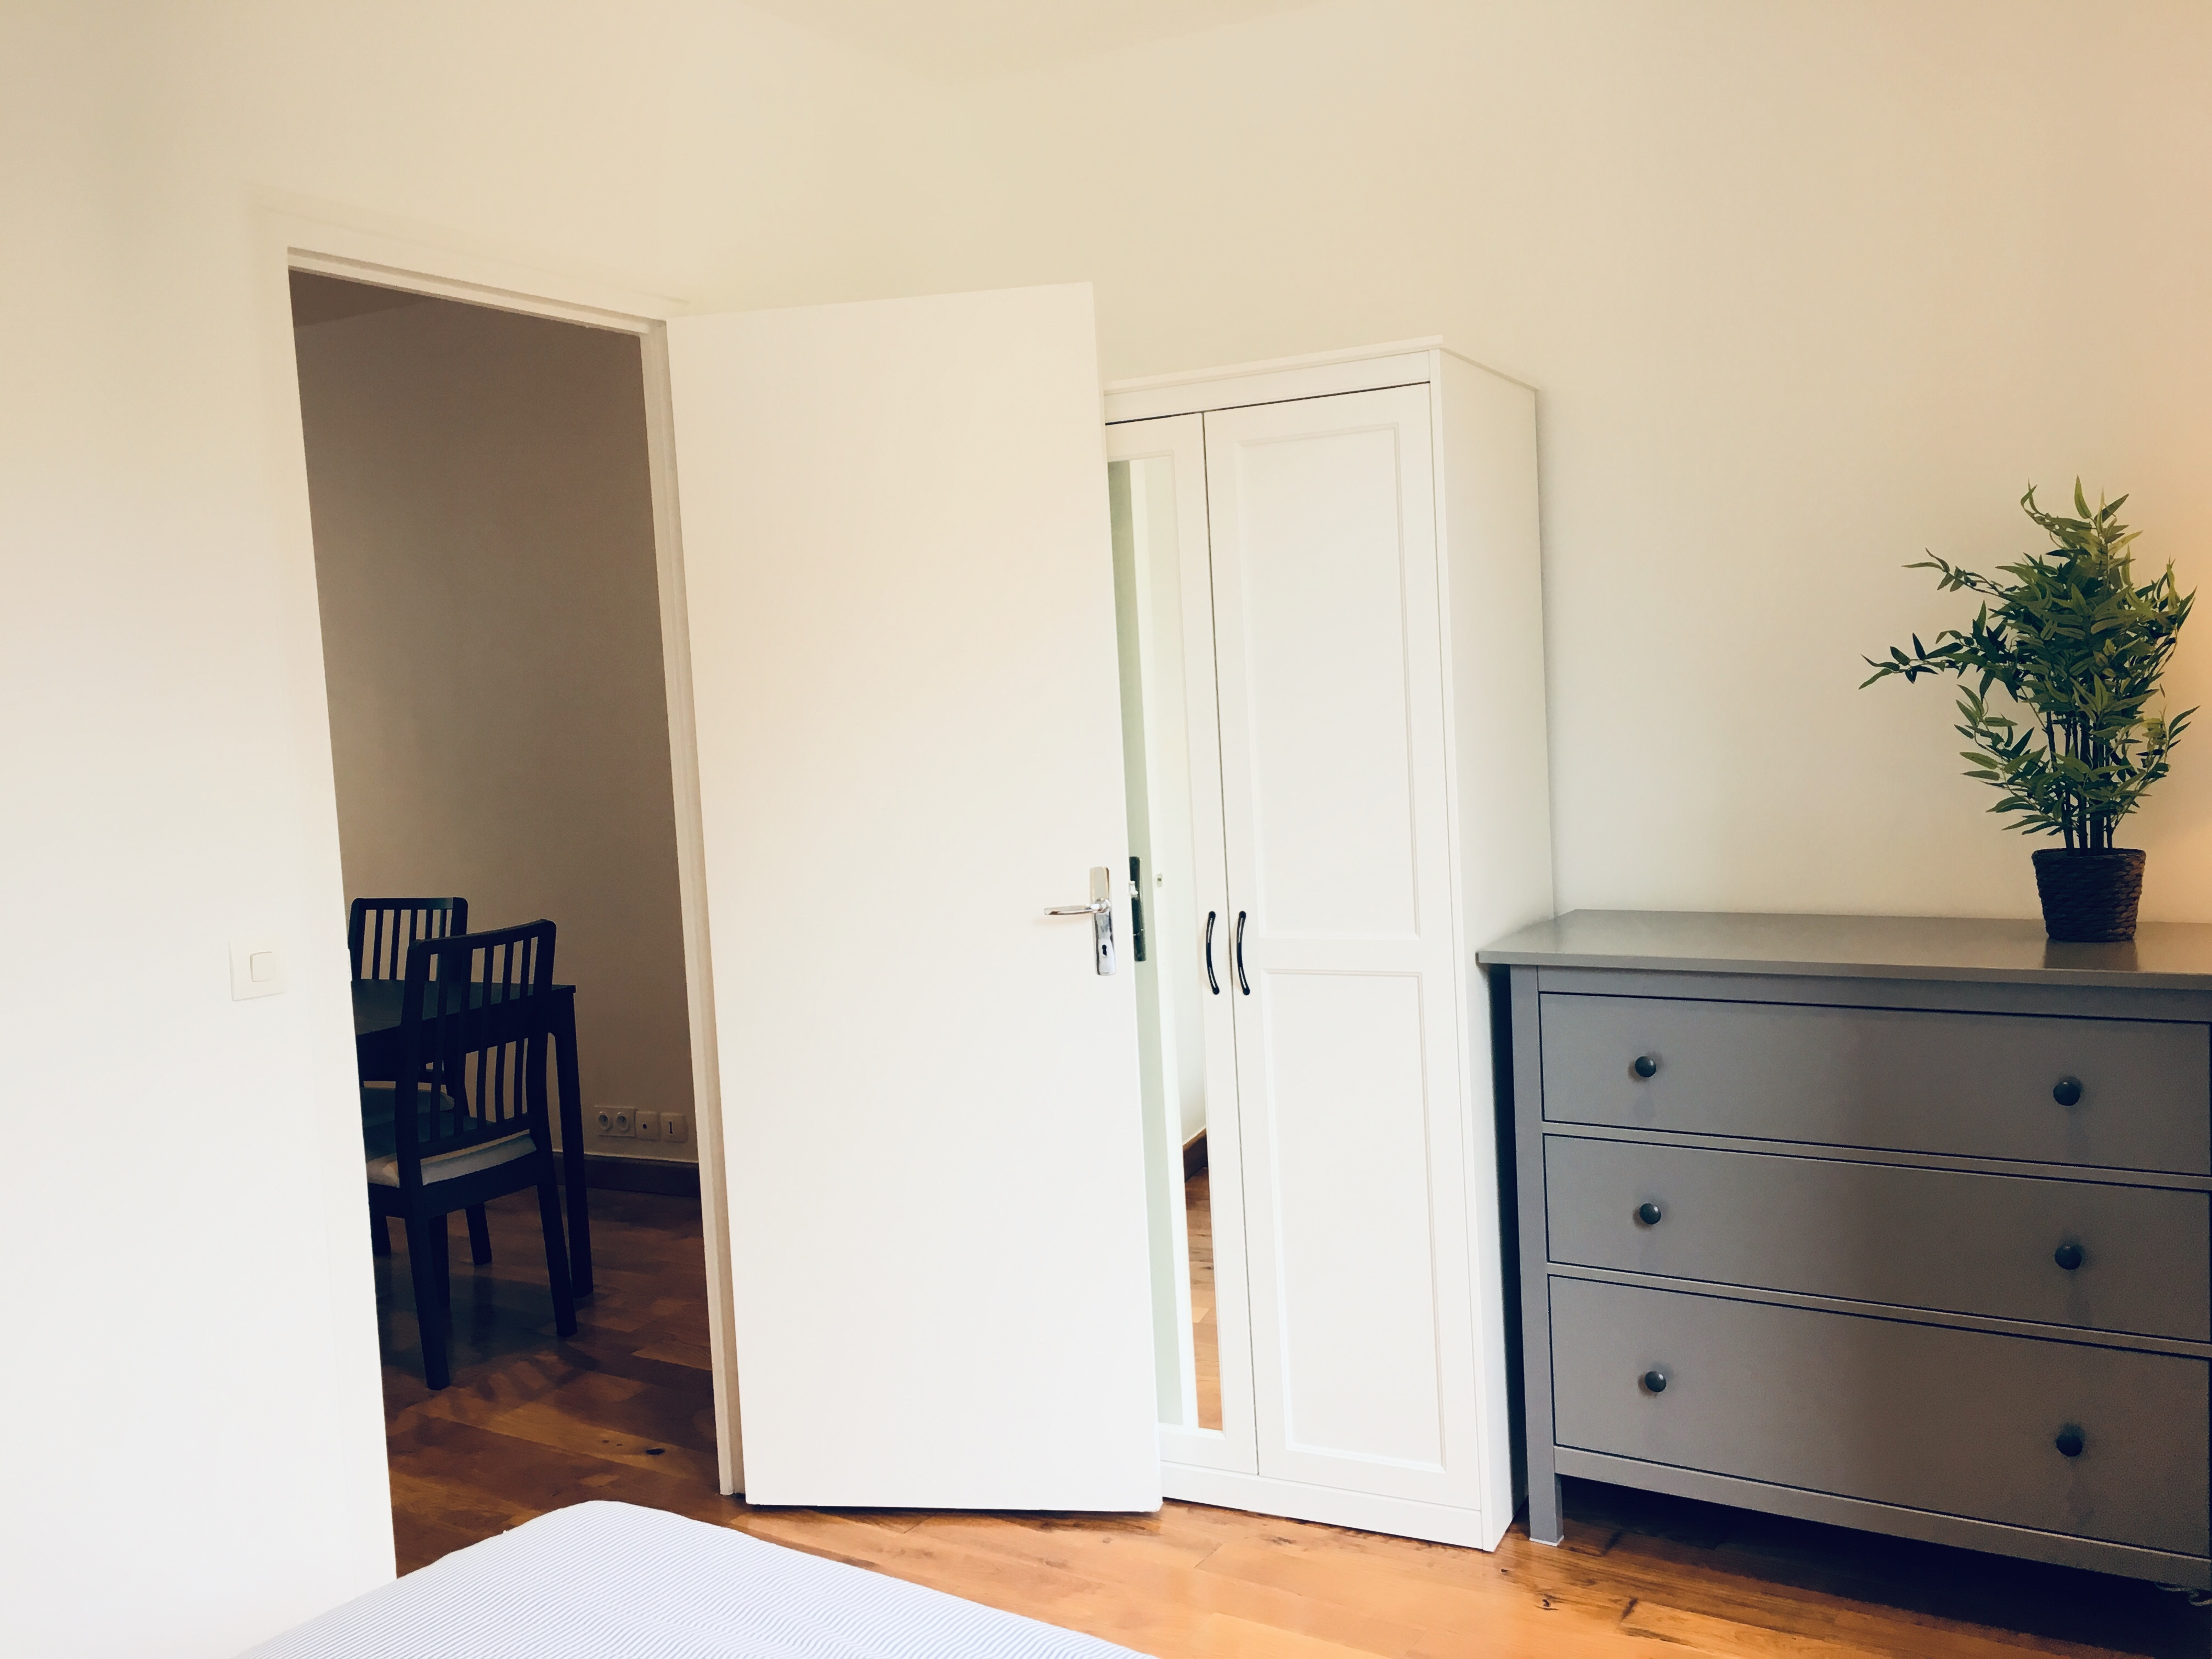 Insead housing premium flat for rent Fontainebleau 1br